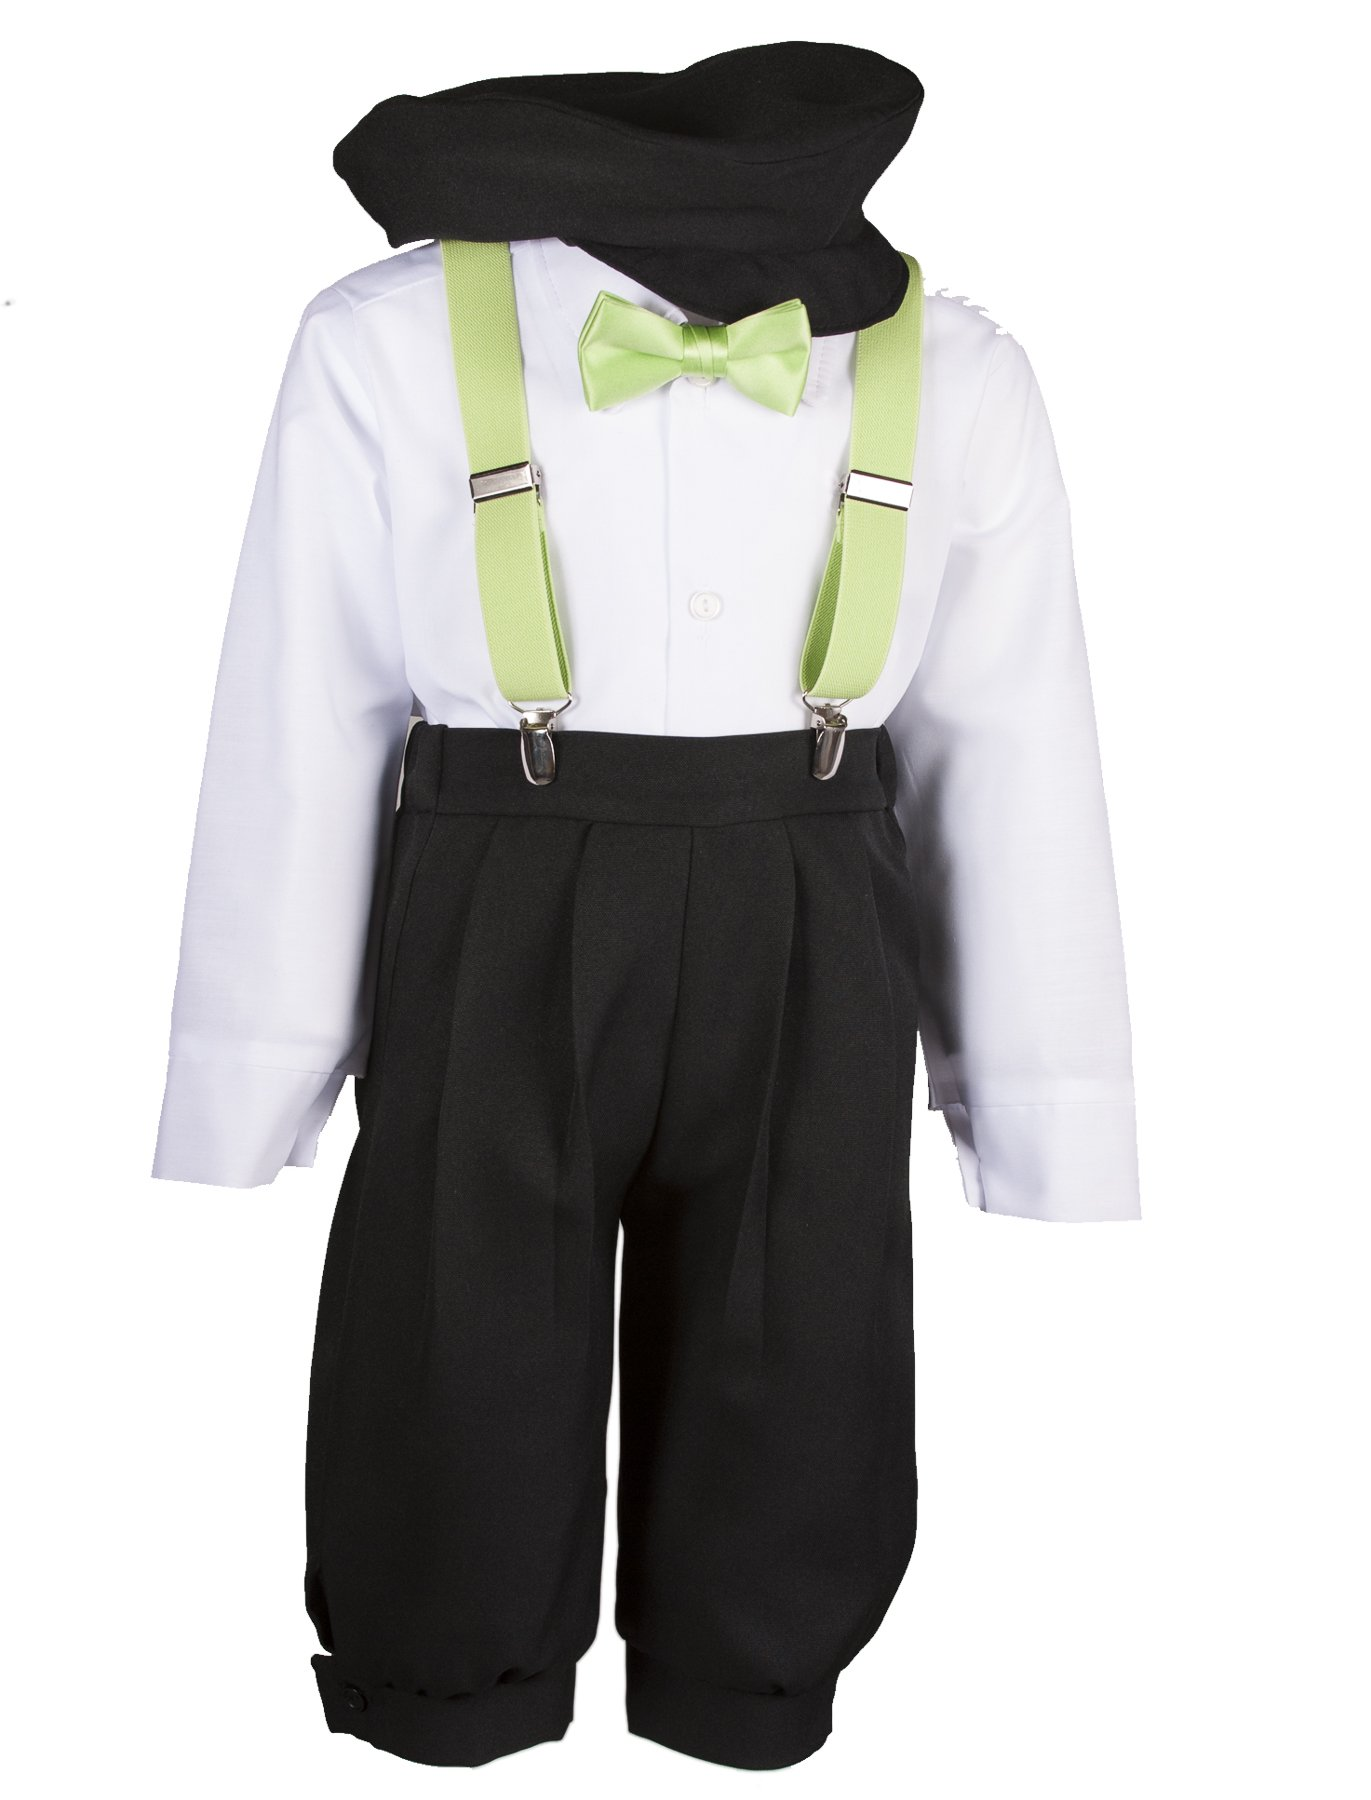 Boys Black Knickers Set Pageboy Cap Lime Suspenders & Bow Tie (4 Boys)